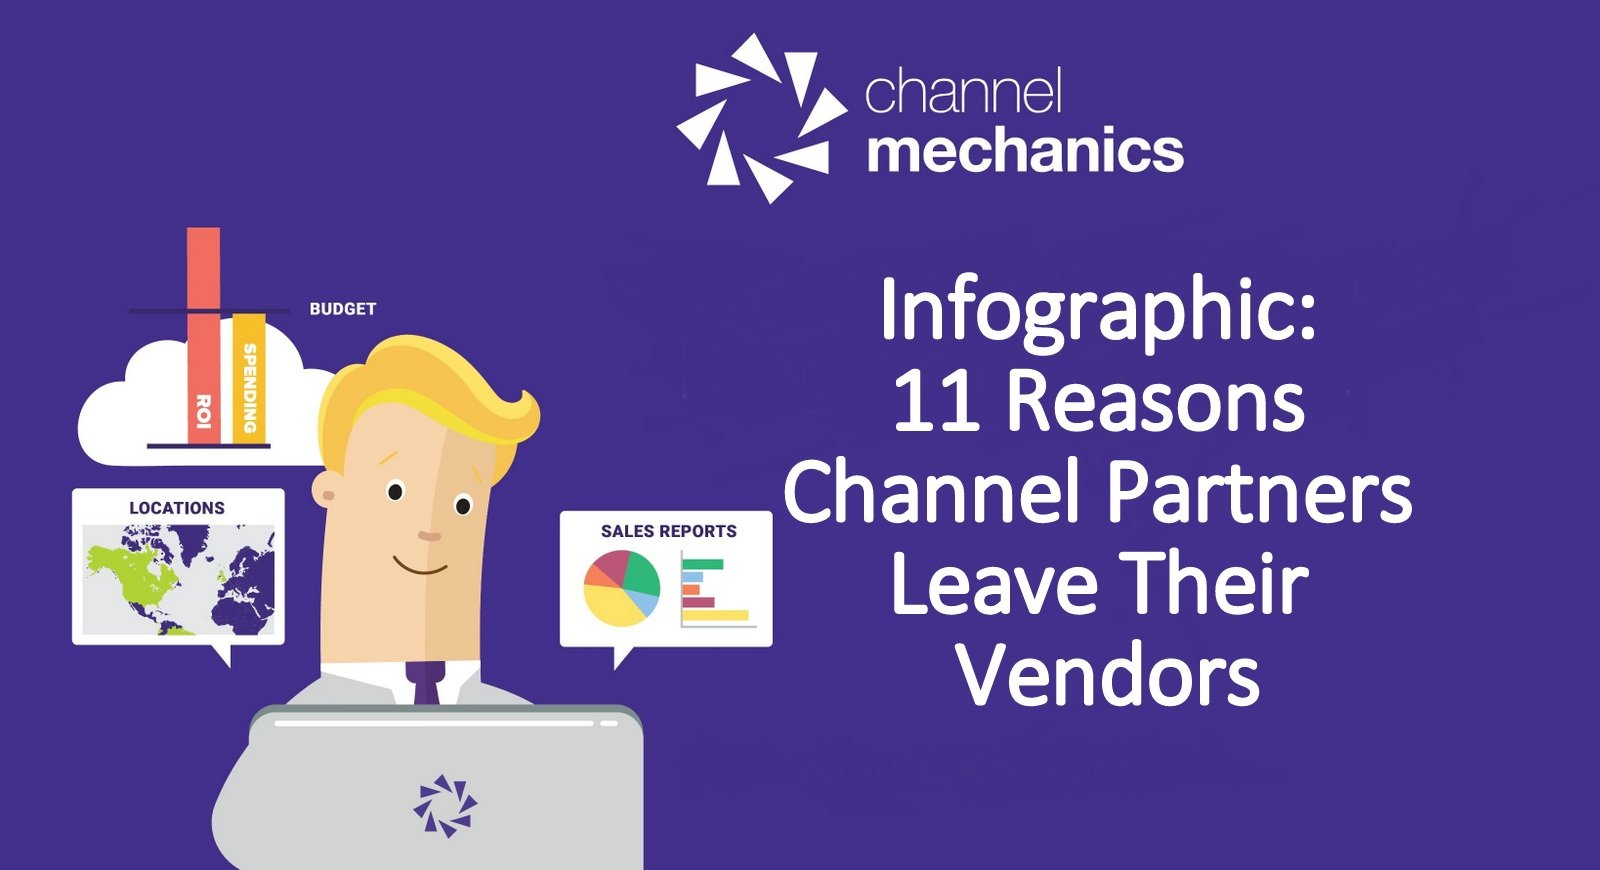 Infographic Reasons Channel Partners Leave